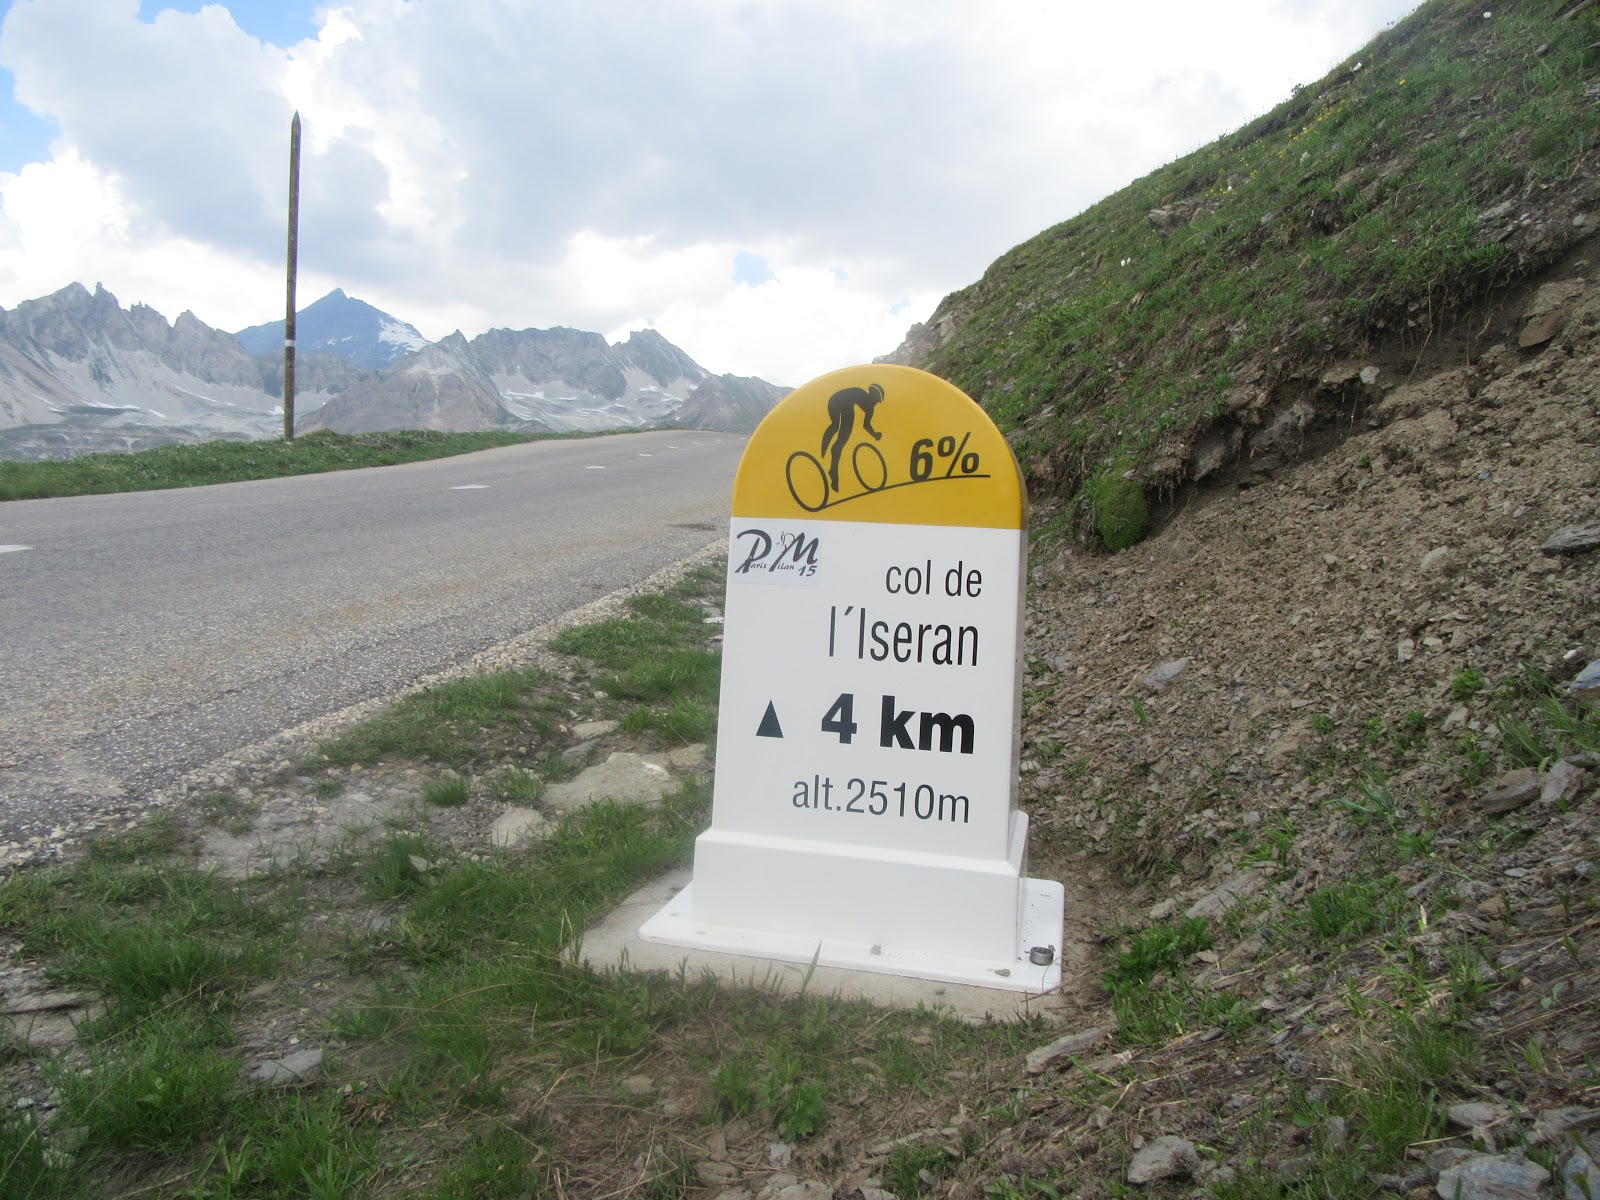 Bicycle ride of Col de L'Iseran from Val d'Isère - km marker and road